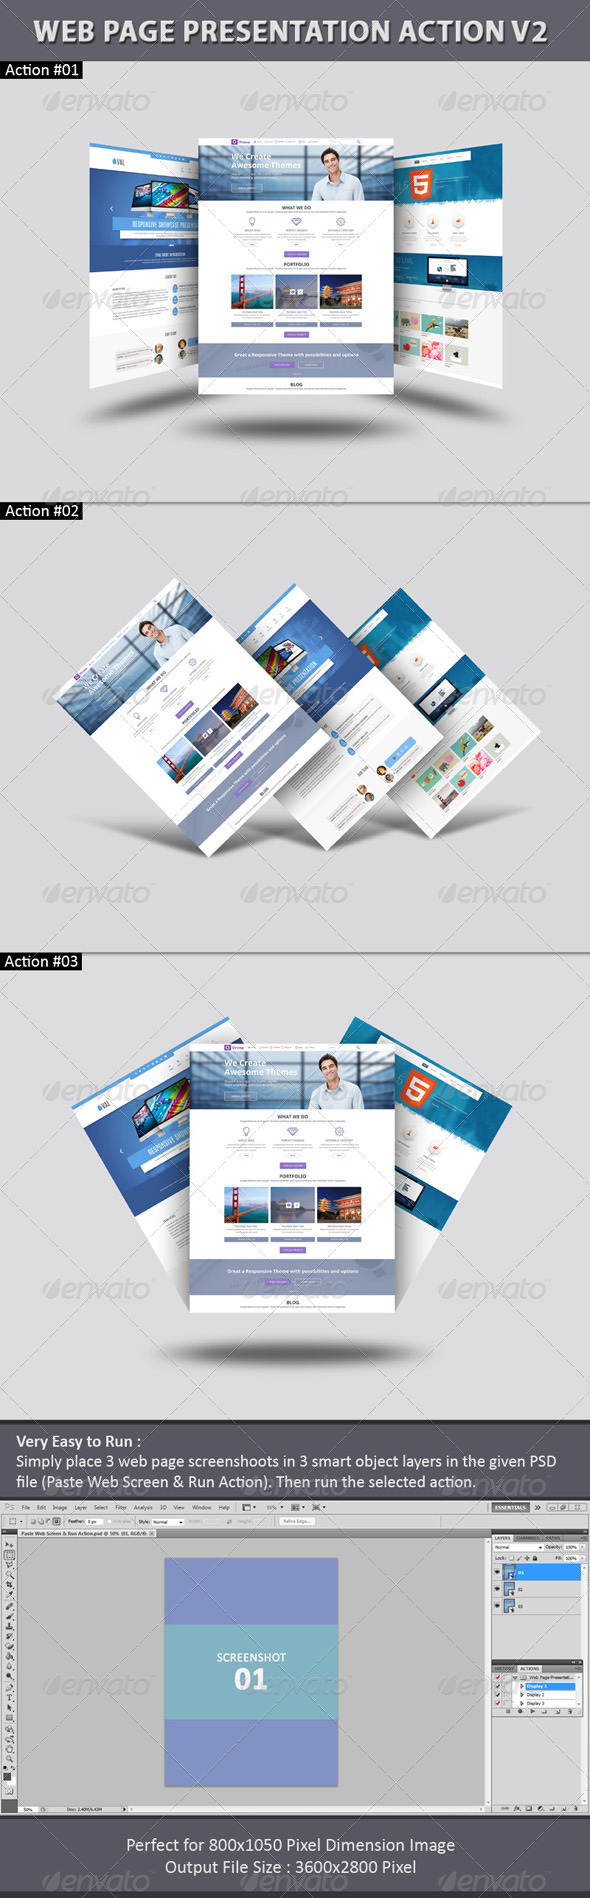 GraphicRiver Web Page Presentation Action V2 7450212